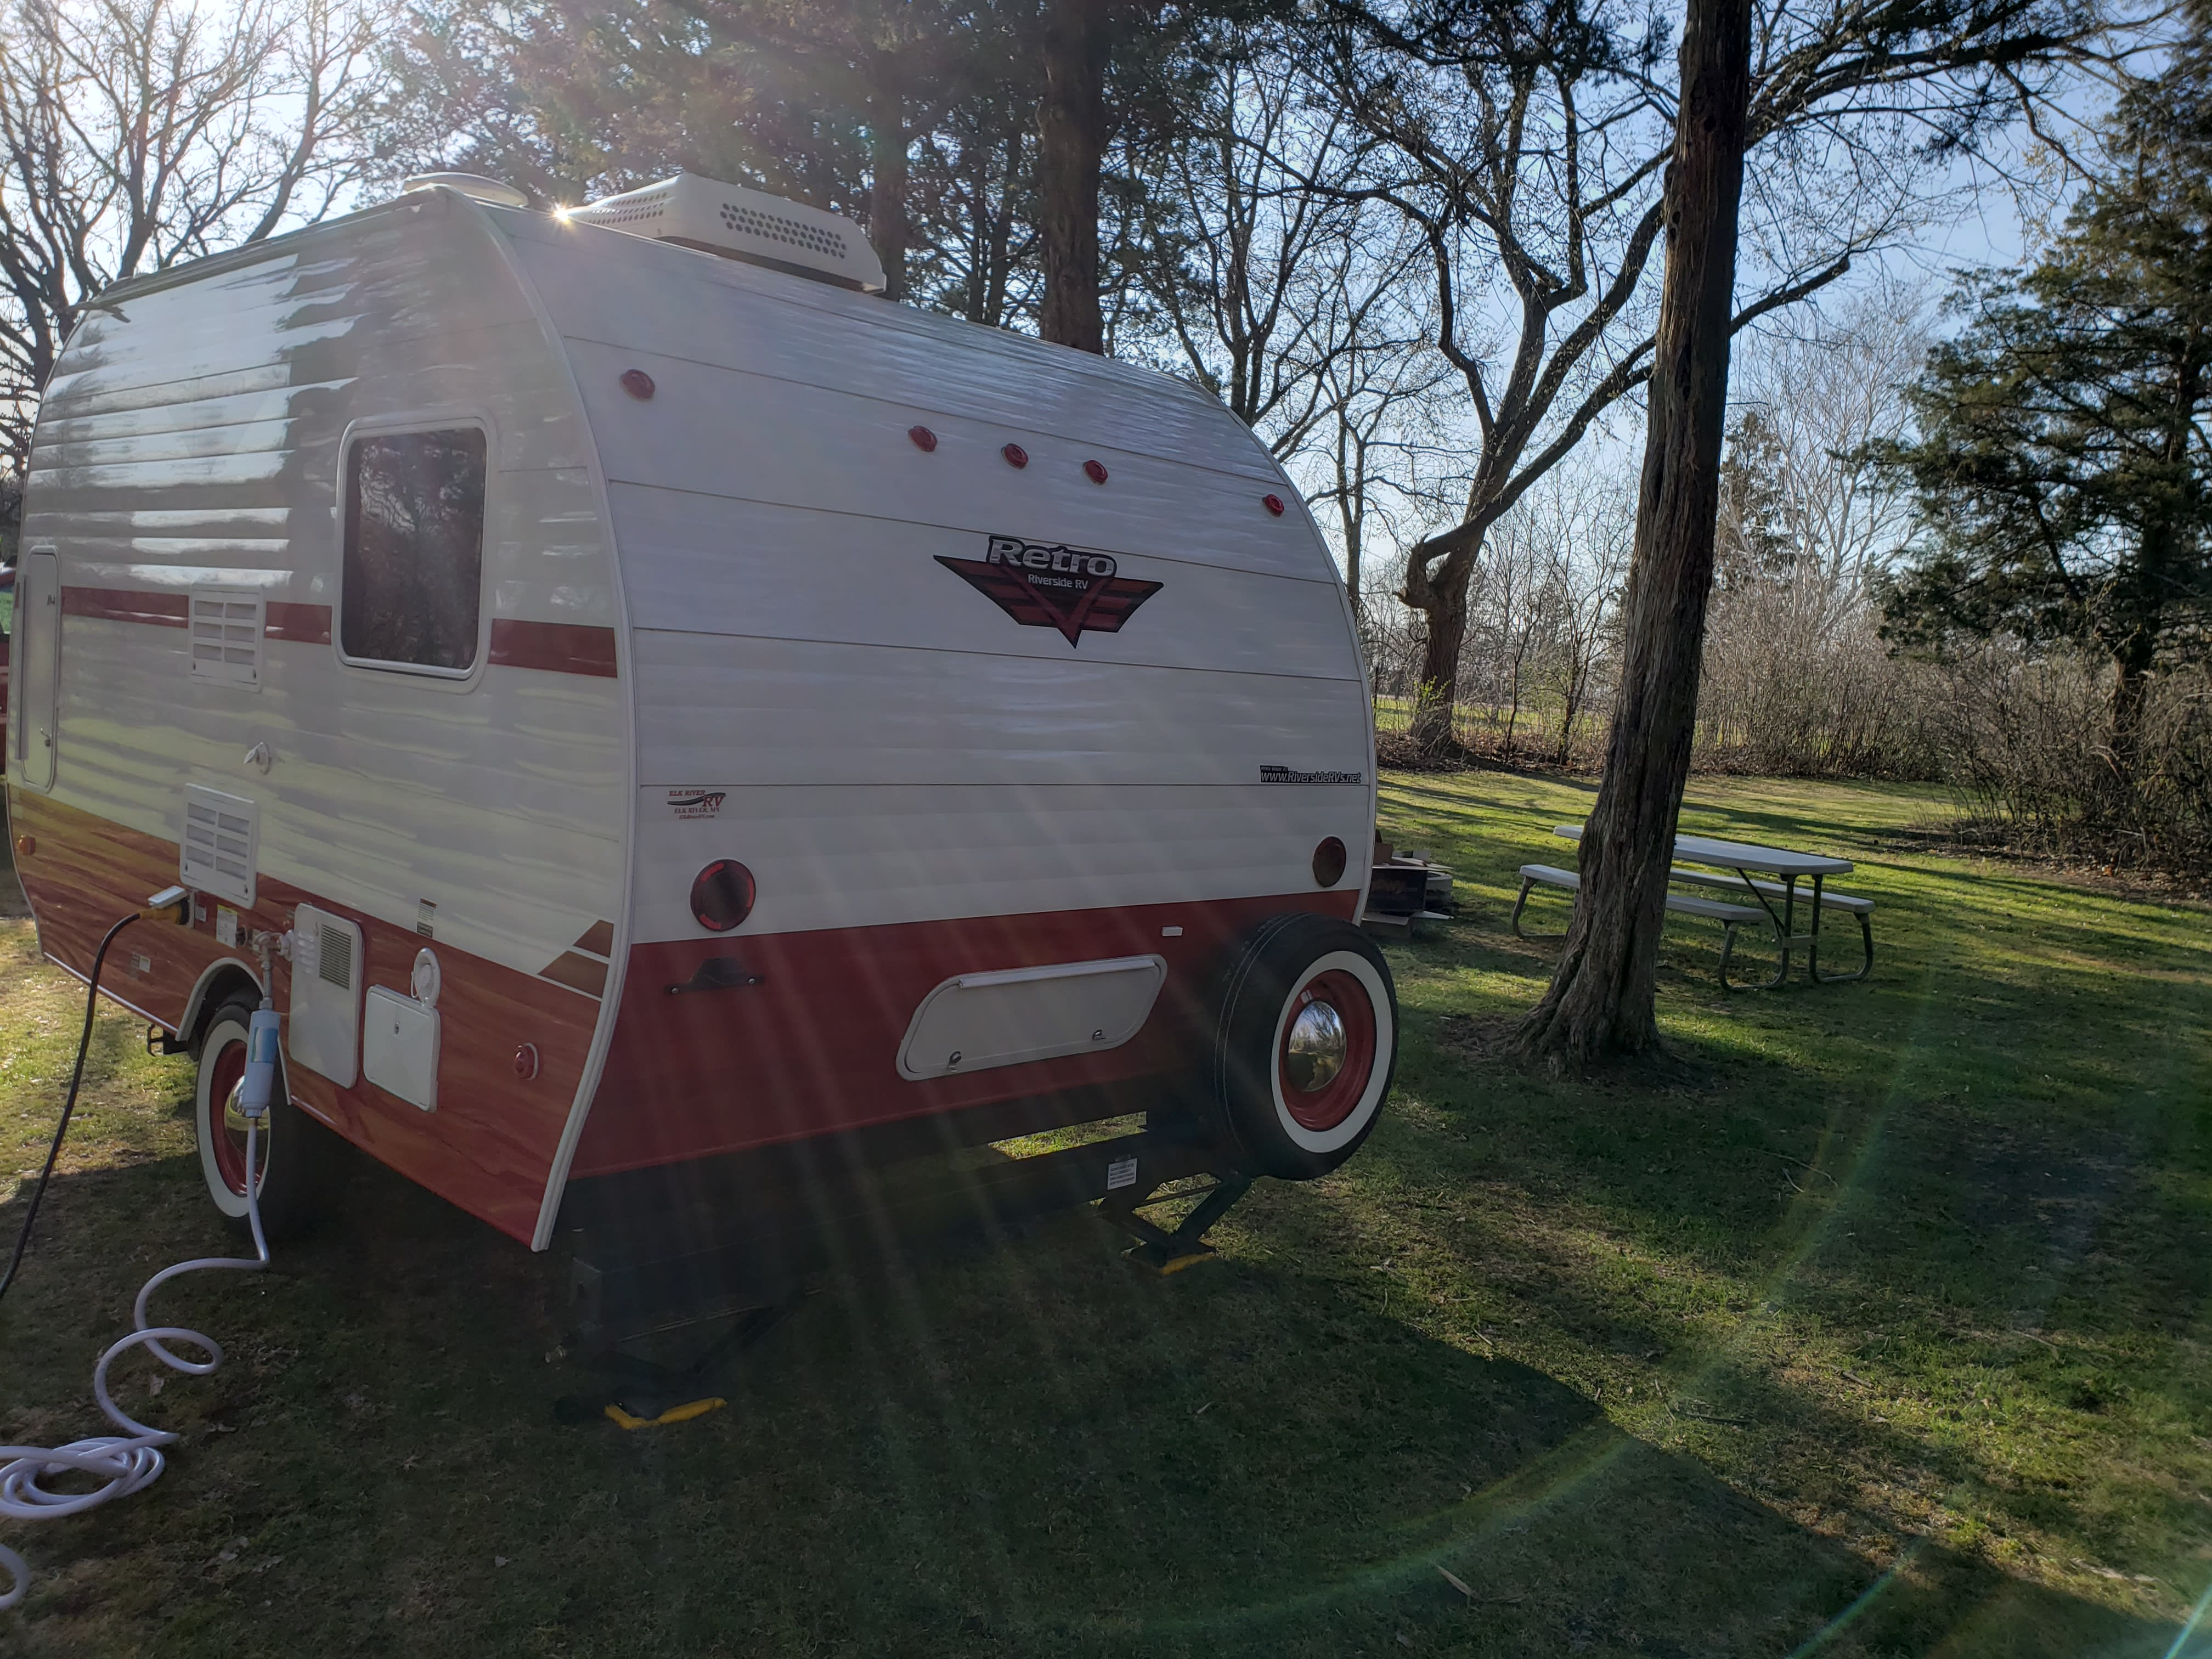 Rear showing storage. So new it doesn't even have plates yet. Riverside Rv Retro 157 2018